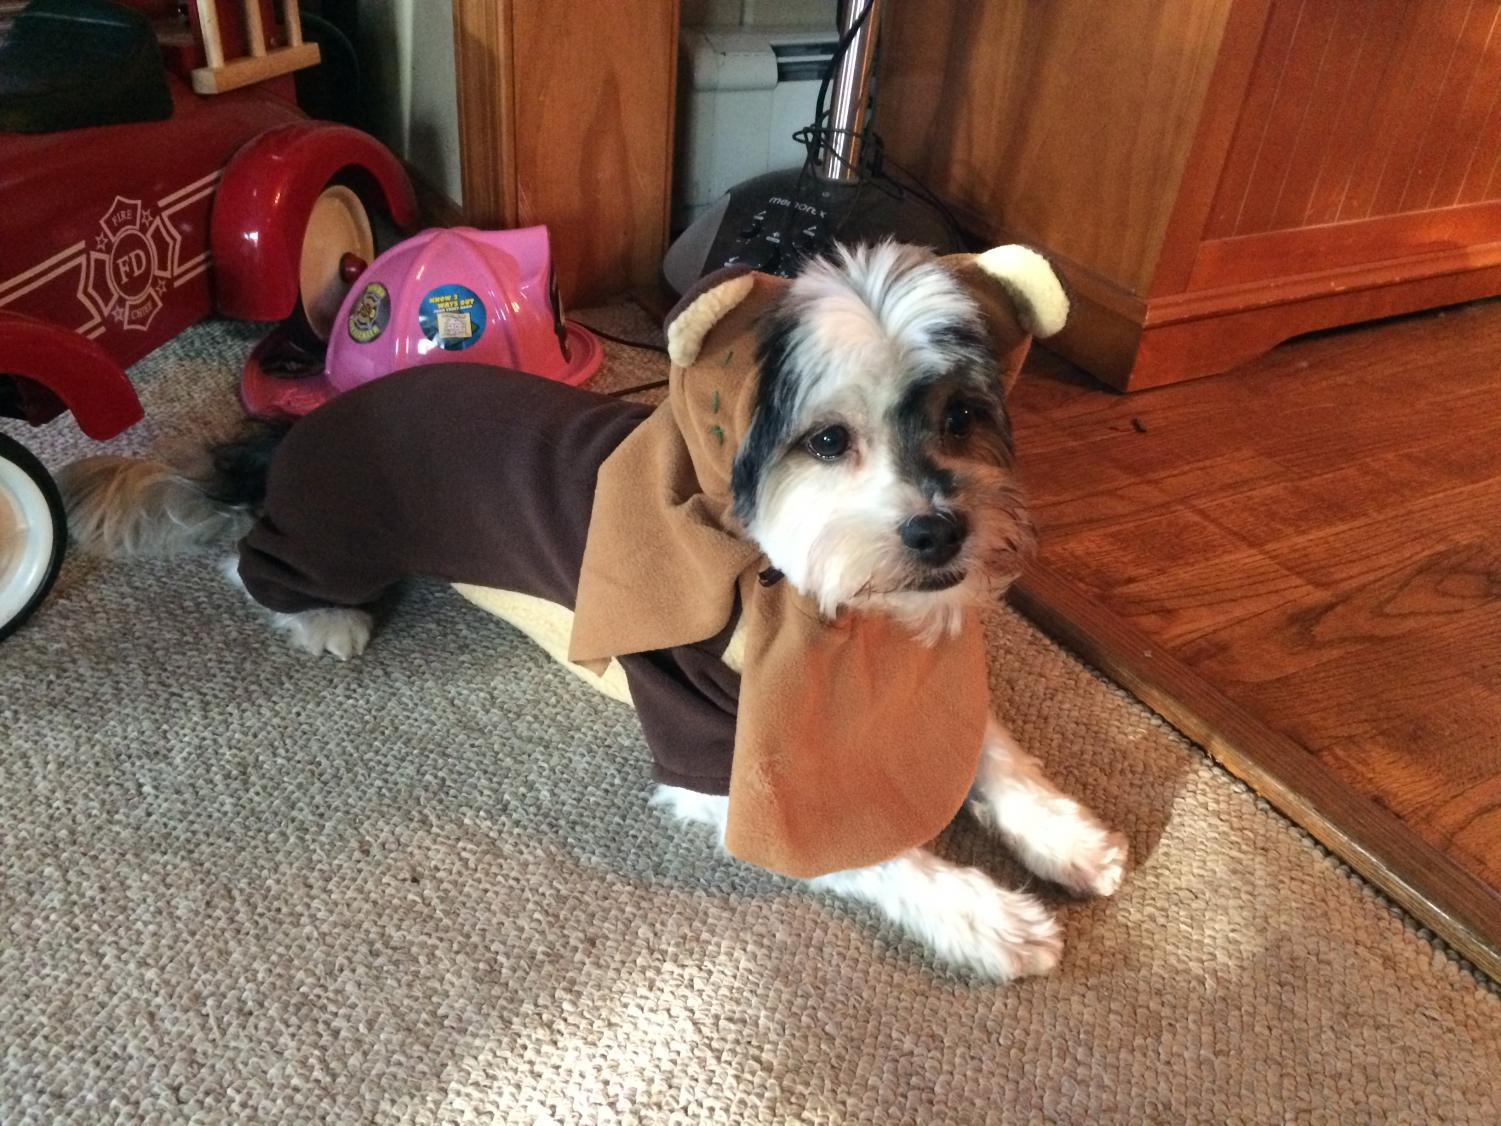 Dog%E2%80%99s+Name%3A+Parker%0A%E2%80%9CI+dressed+my+dog+as+an+ewok+two+years+ago+for+Halloween+because+the+rest+of+my+family+was+dressed+as+Star+Wars+characters.%E2%80%9D+%0A-+Ms.+Aimee+Burgoyne-Black%2C+English+Teacher